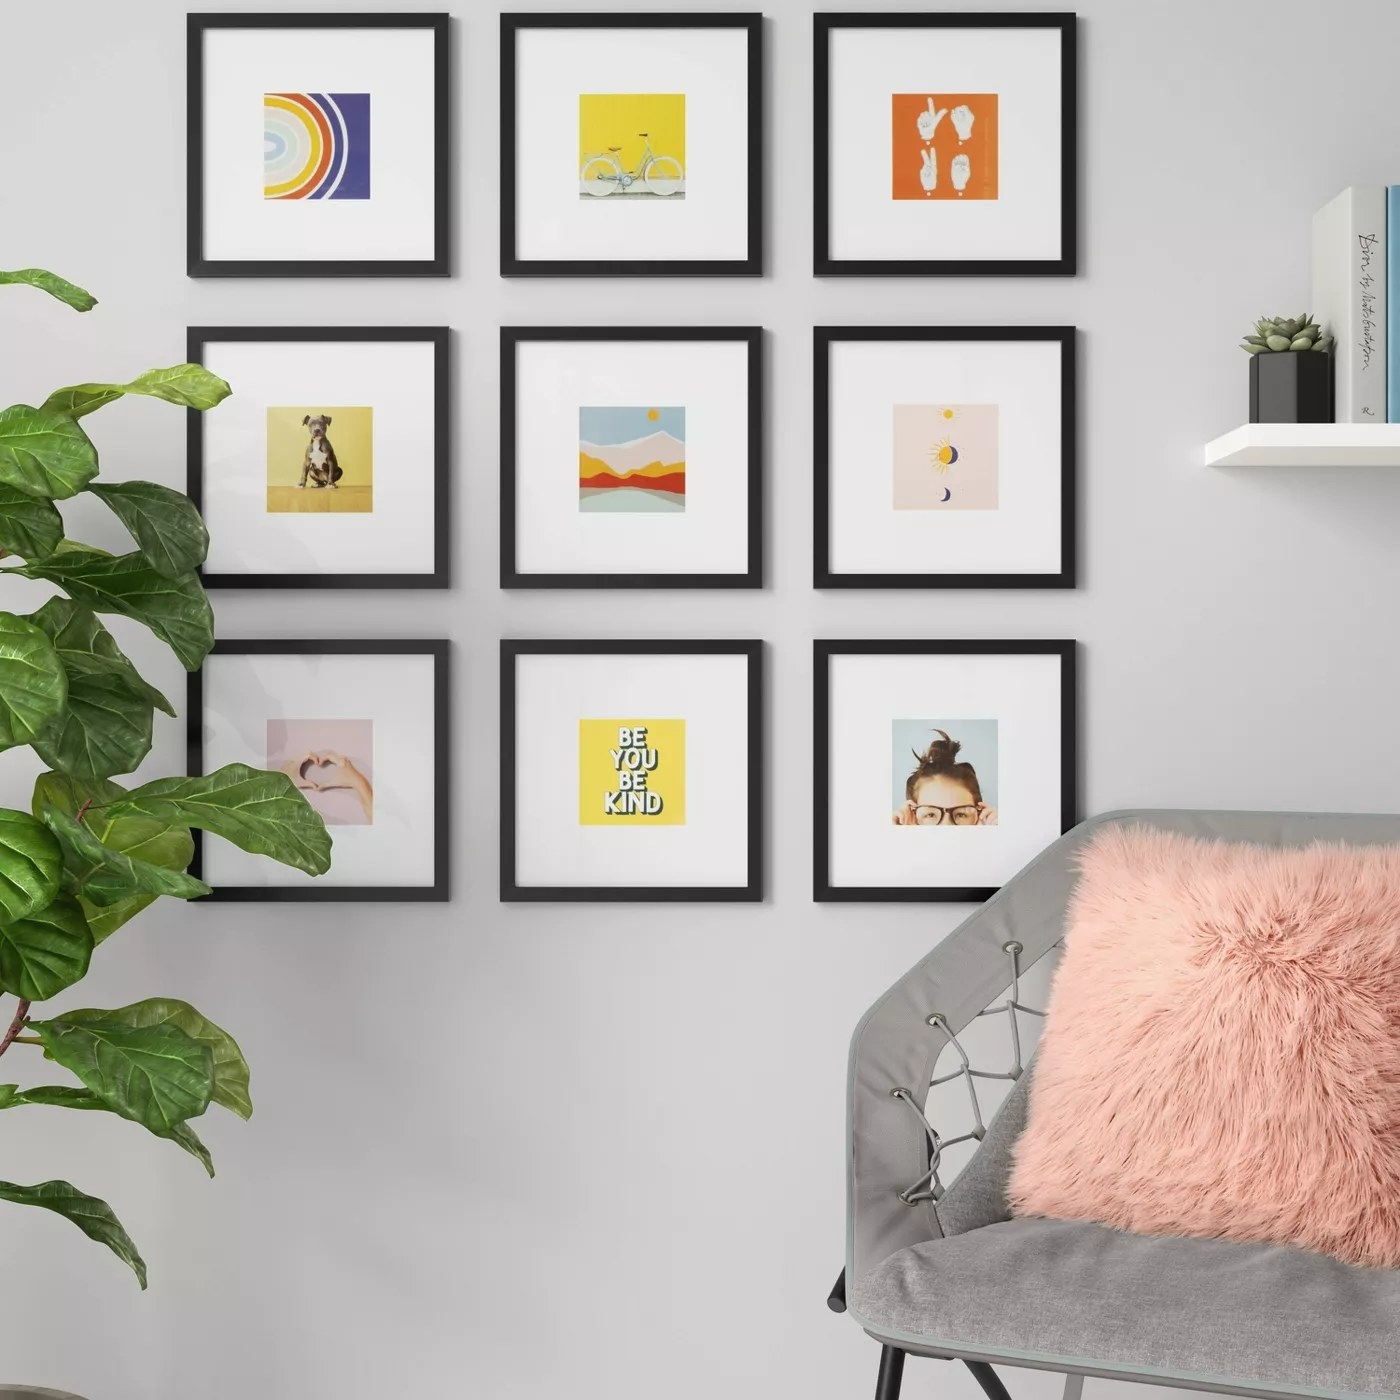 The colorful nine photos arranged in a gallery wall formation